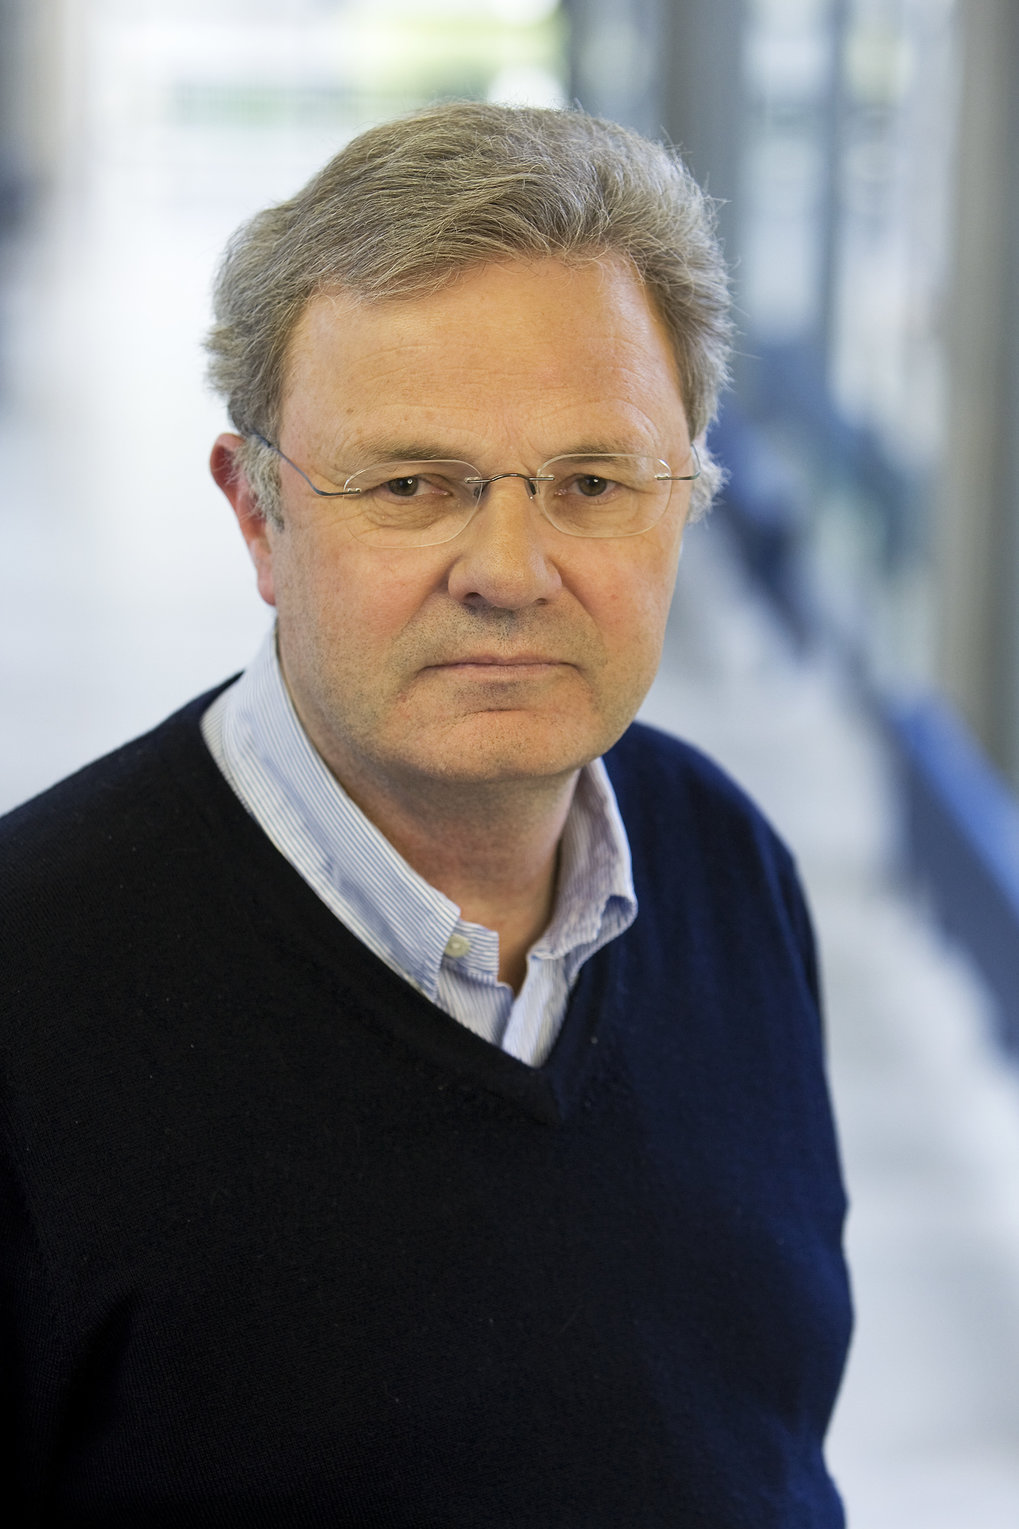 Prof. Dr. Wolfgang Baumeister